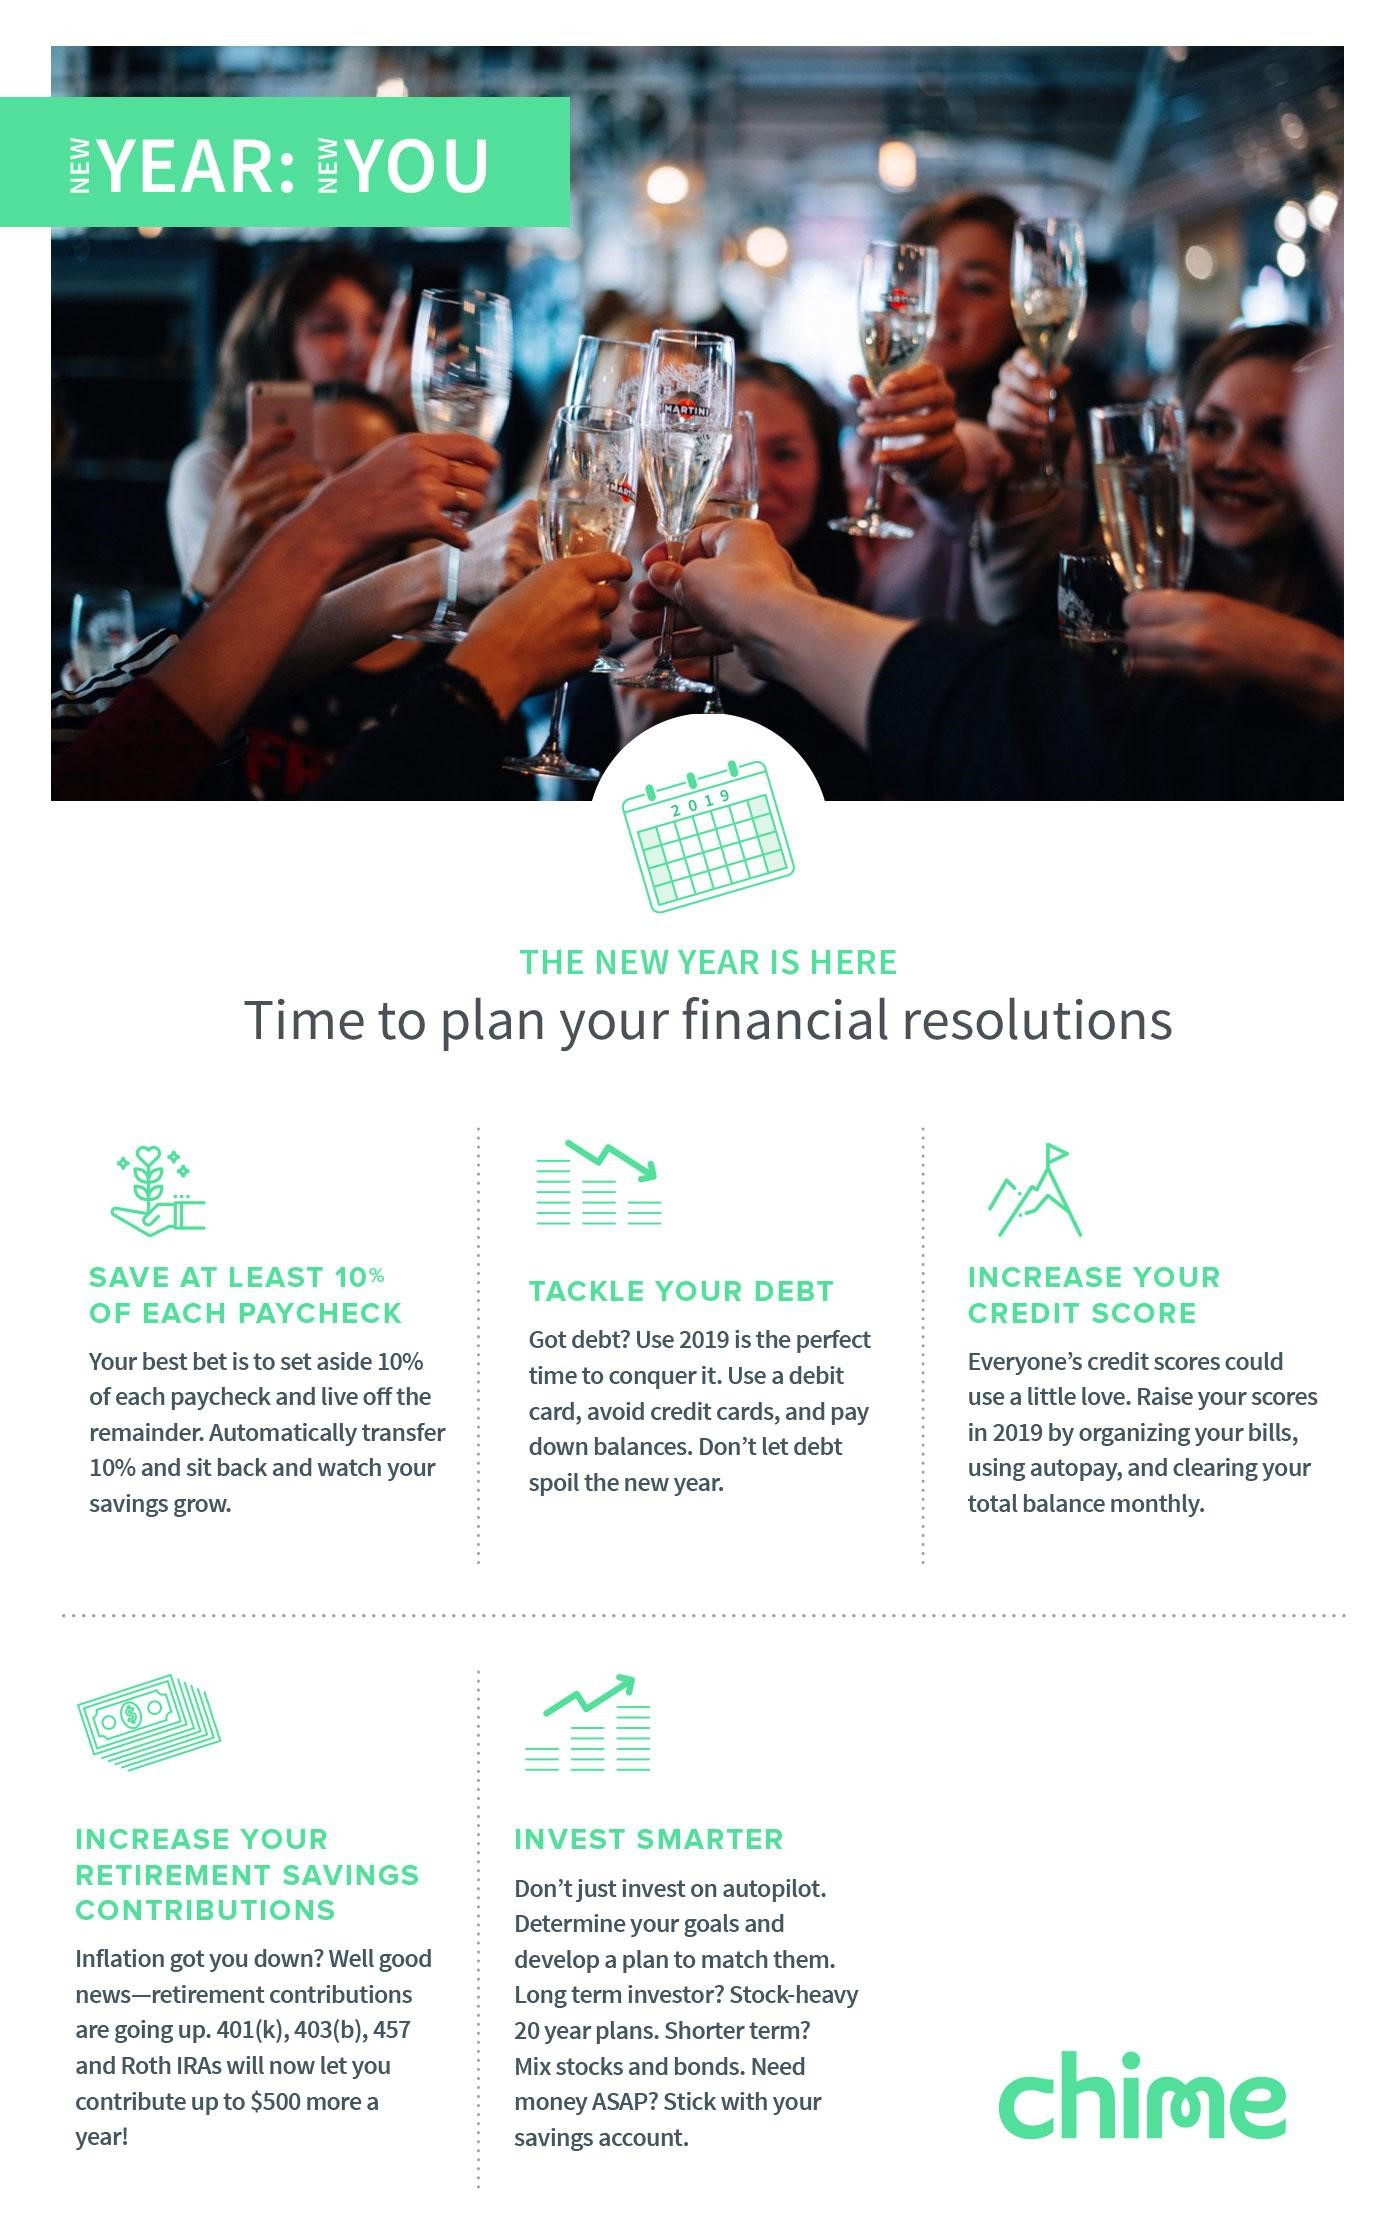 How to Get Your Finances in Order this Year